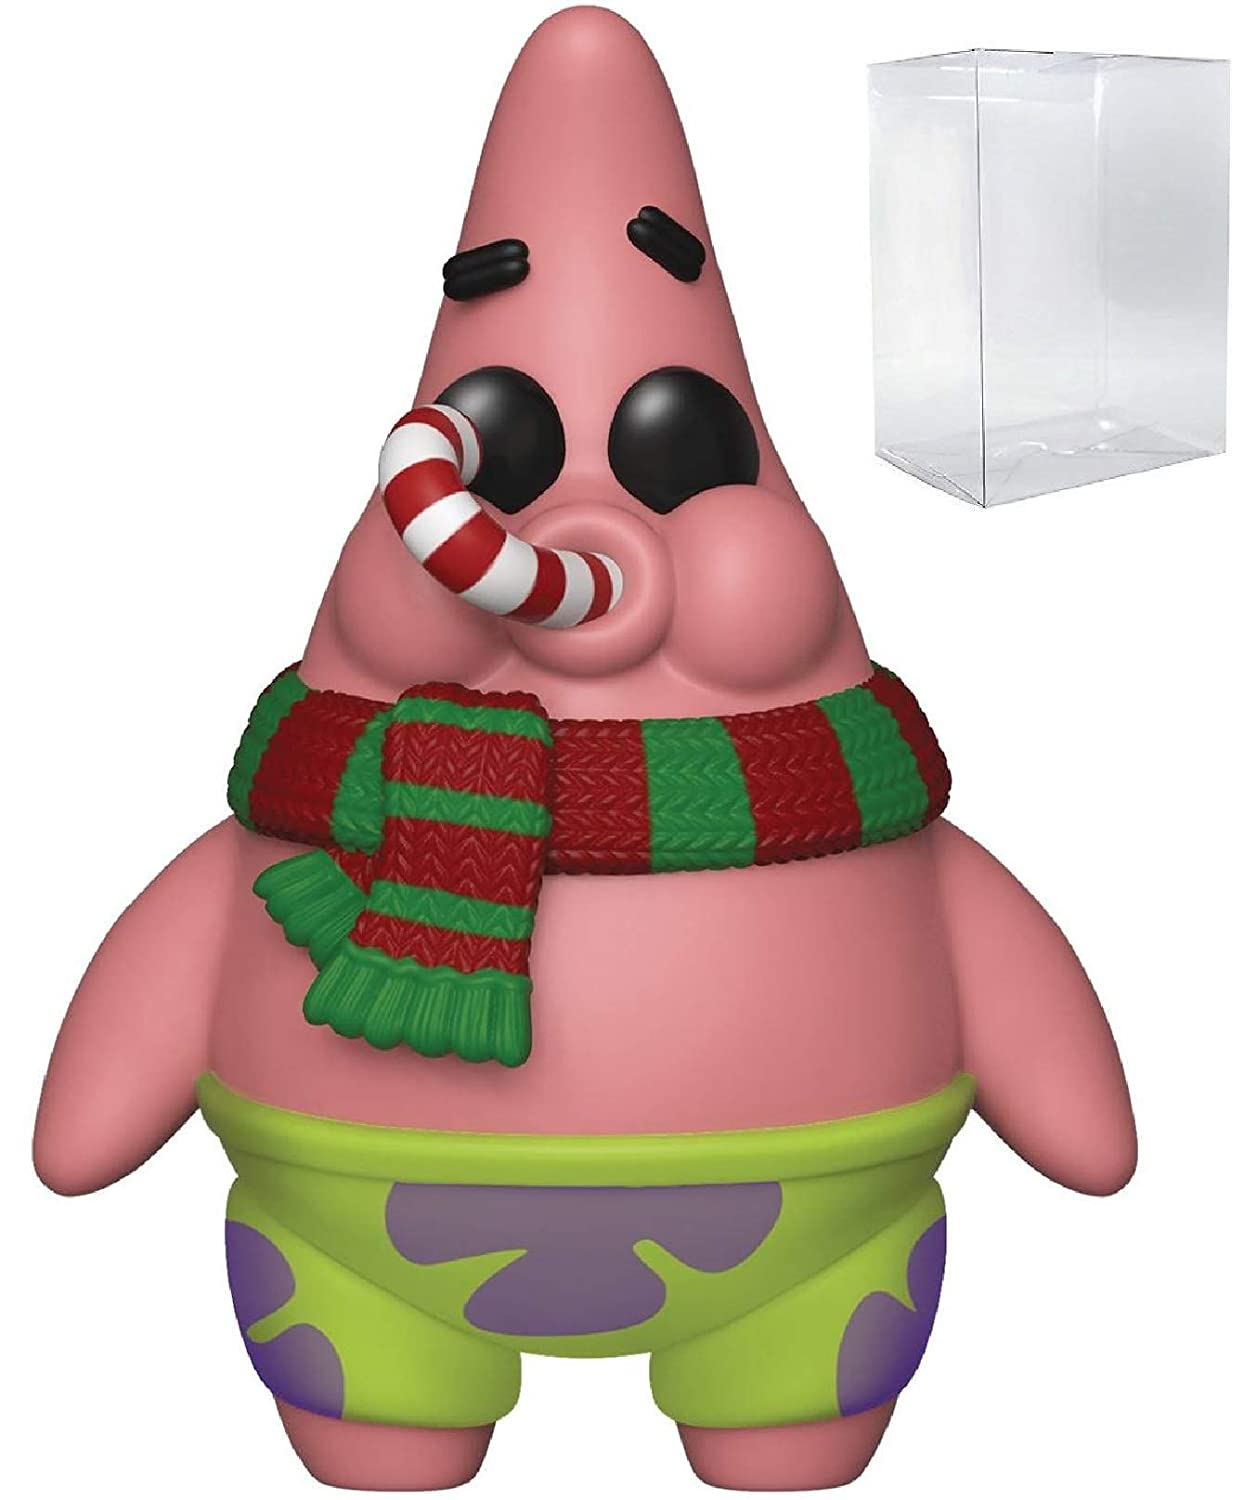 Funko Pop Holiday Patrick Star Vinyl Figure Includes Pop Box Protector Case Animation: Spongebob Squarepants